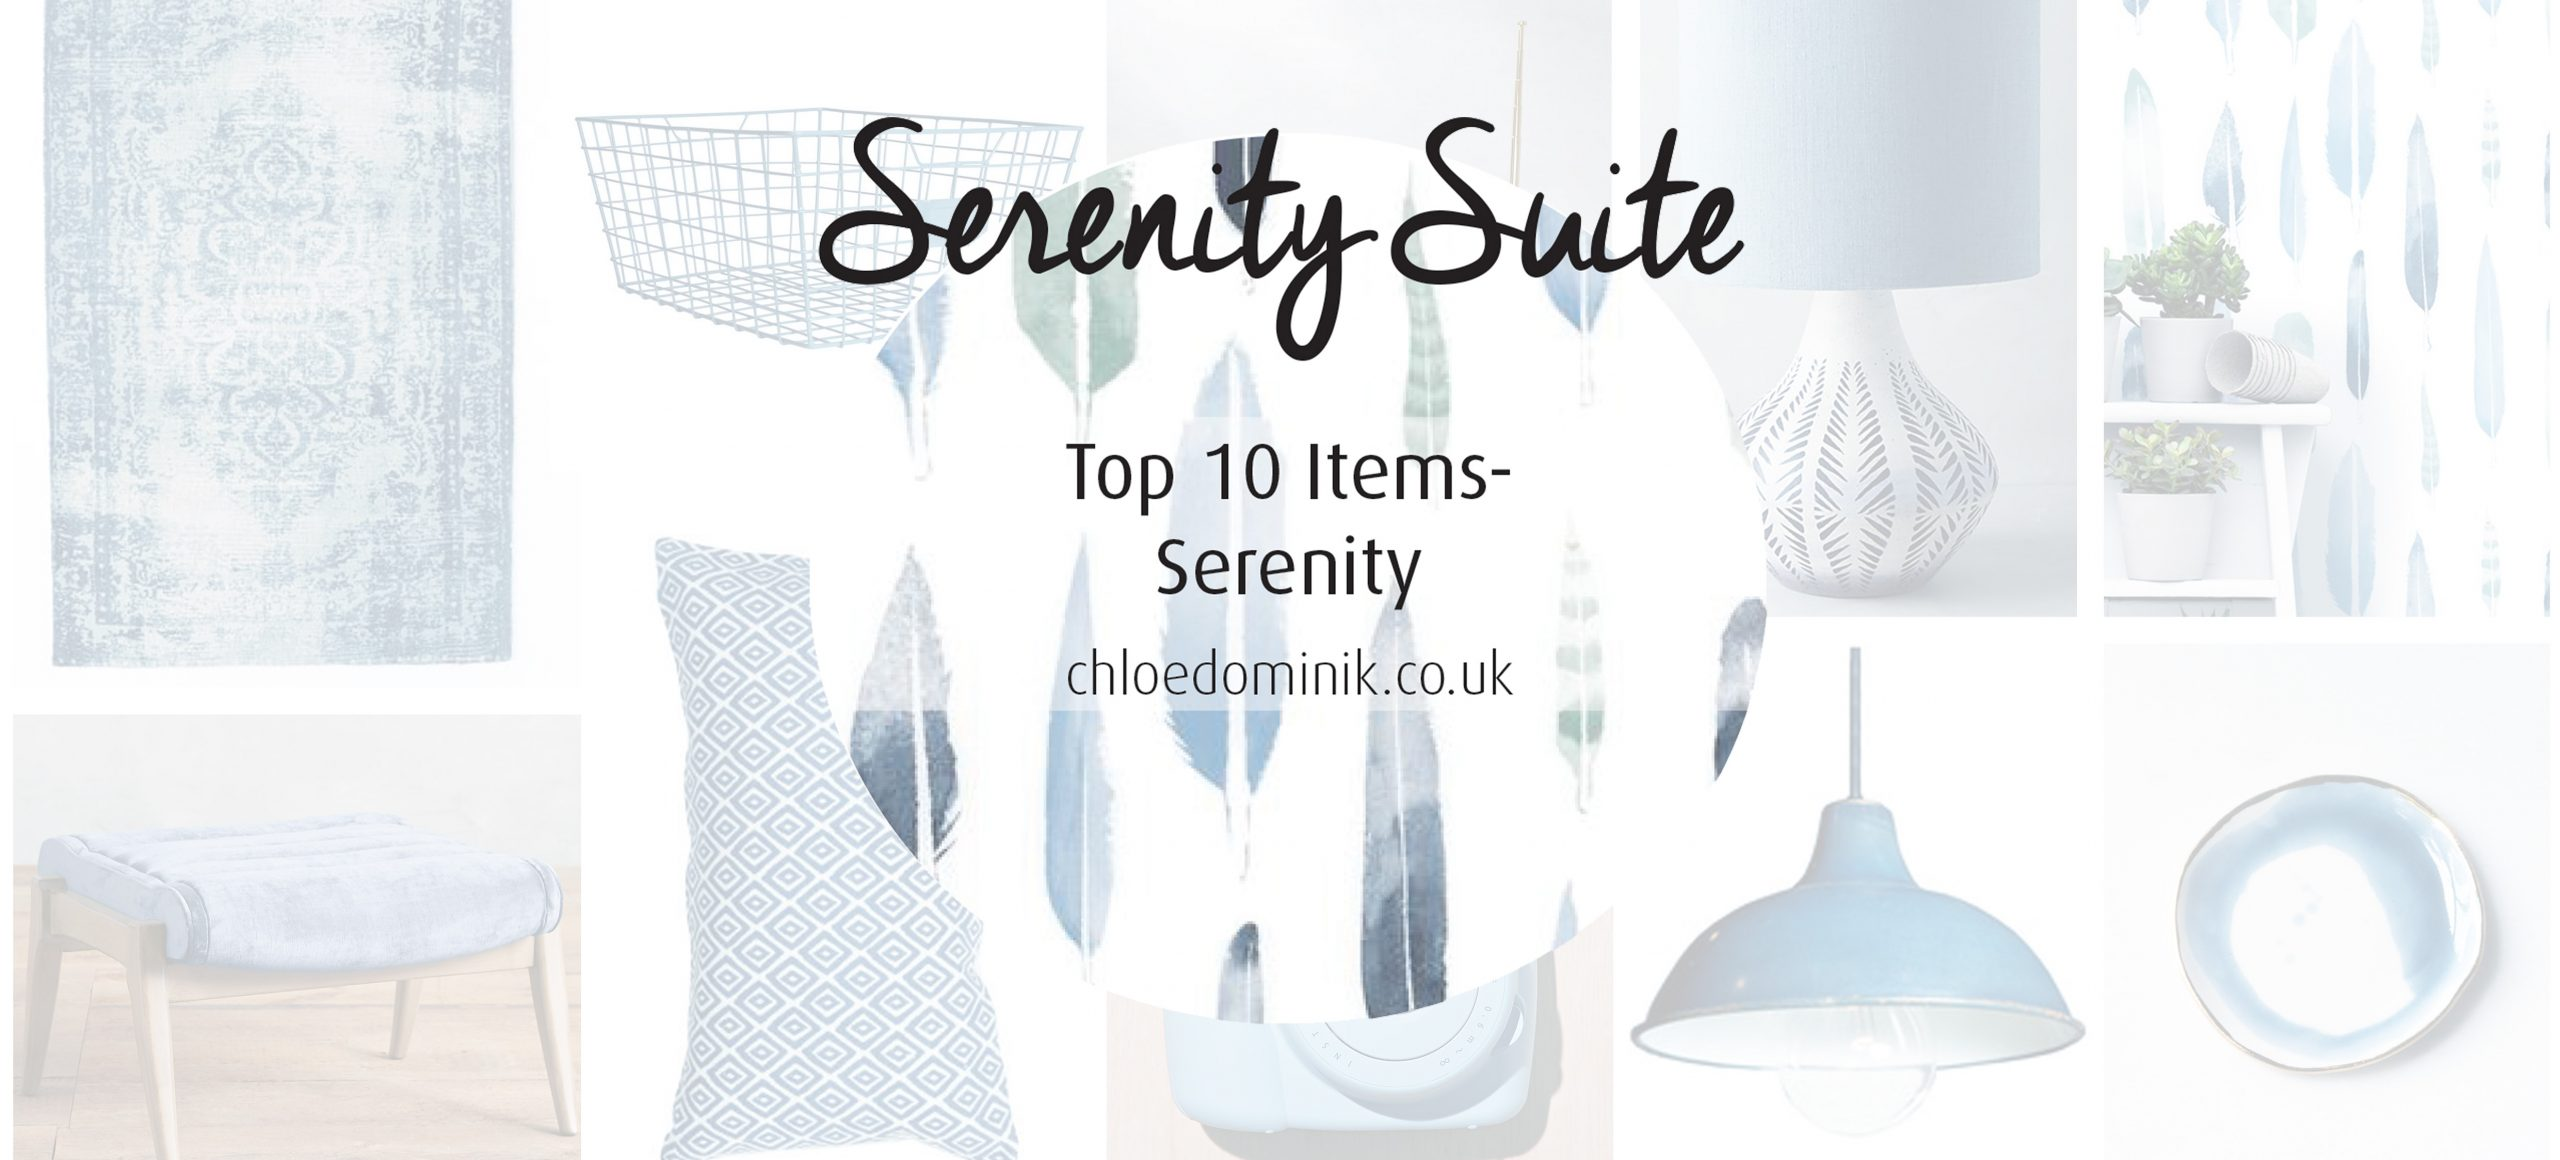 Serenity Suite: Top 10 Items- Serenity